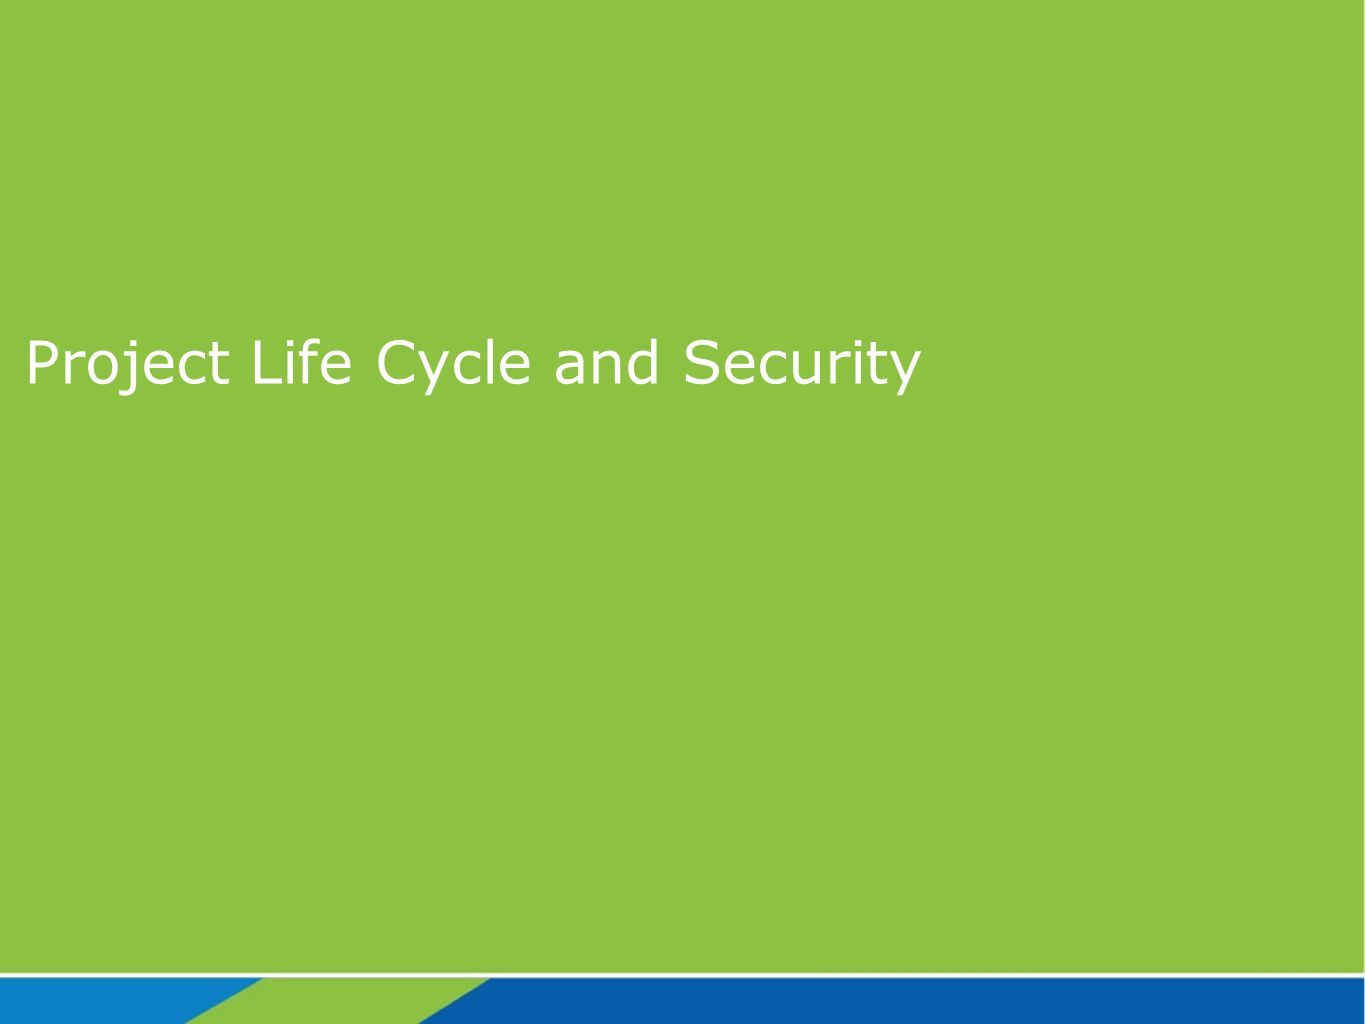 Project Life Cycle and Security